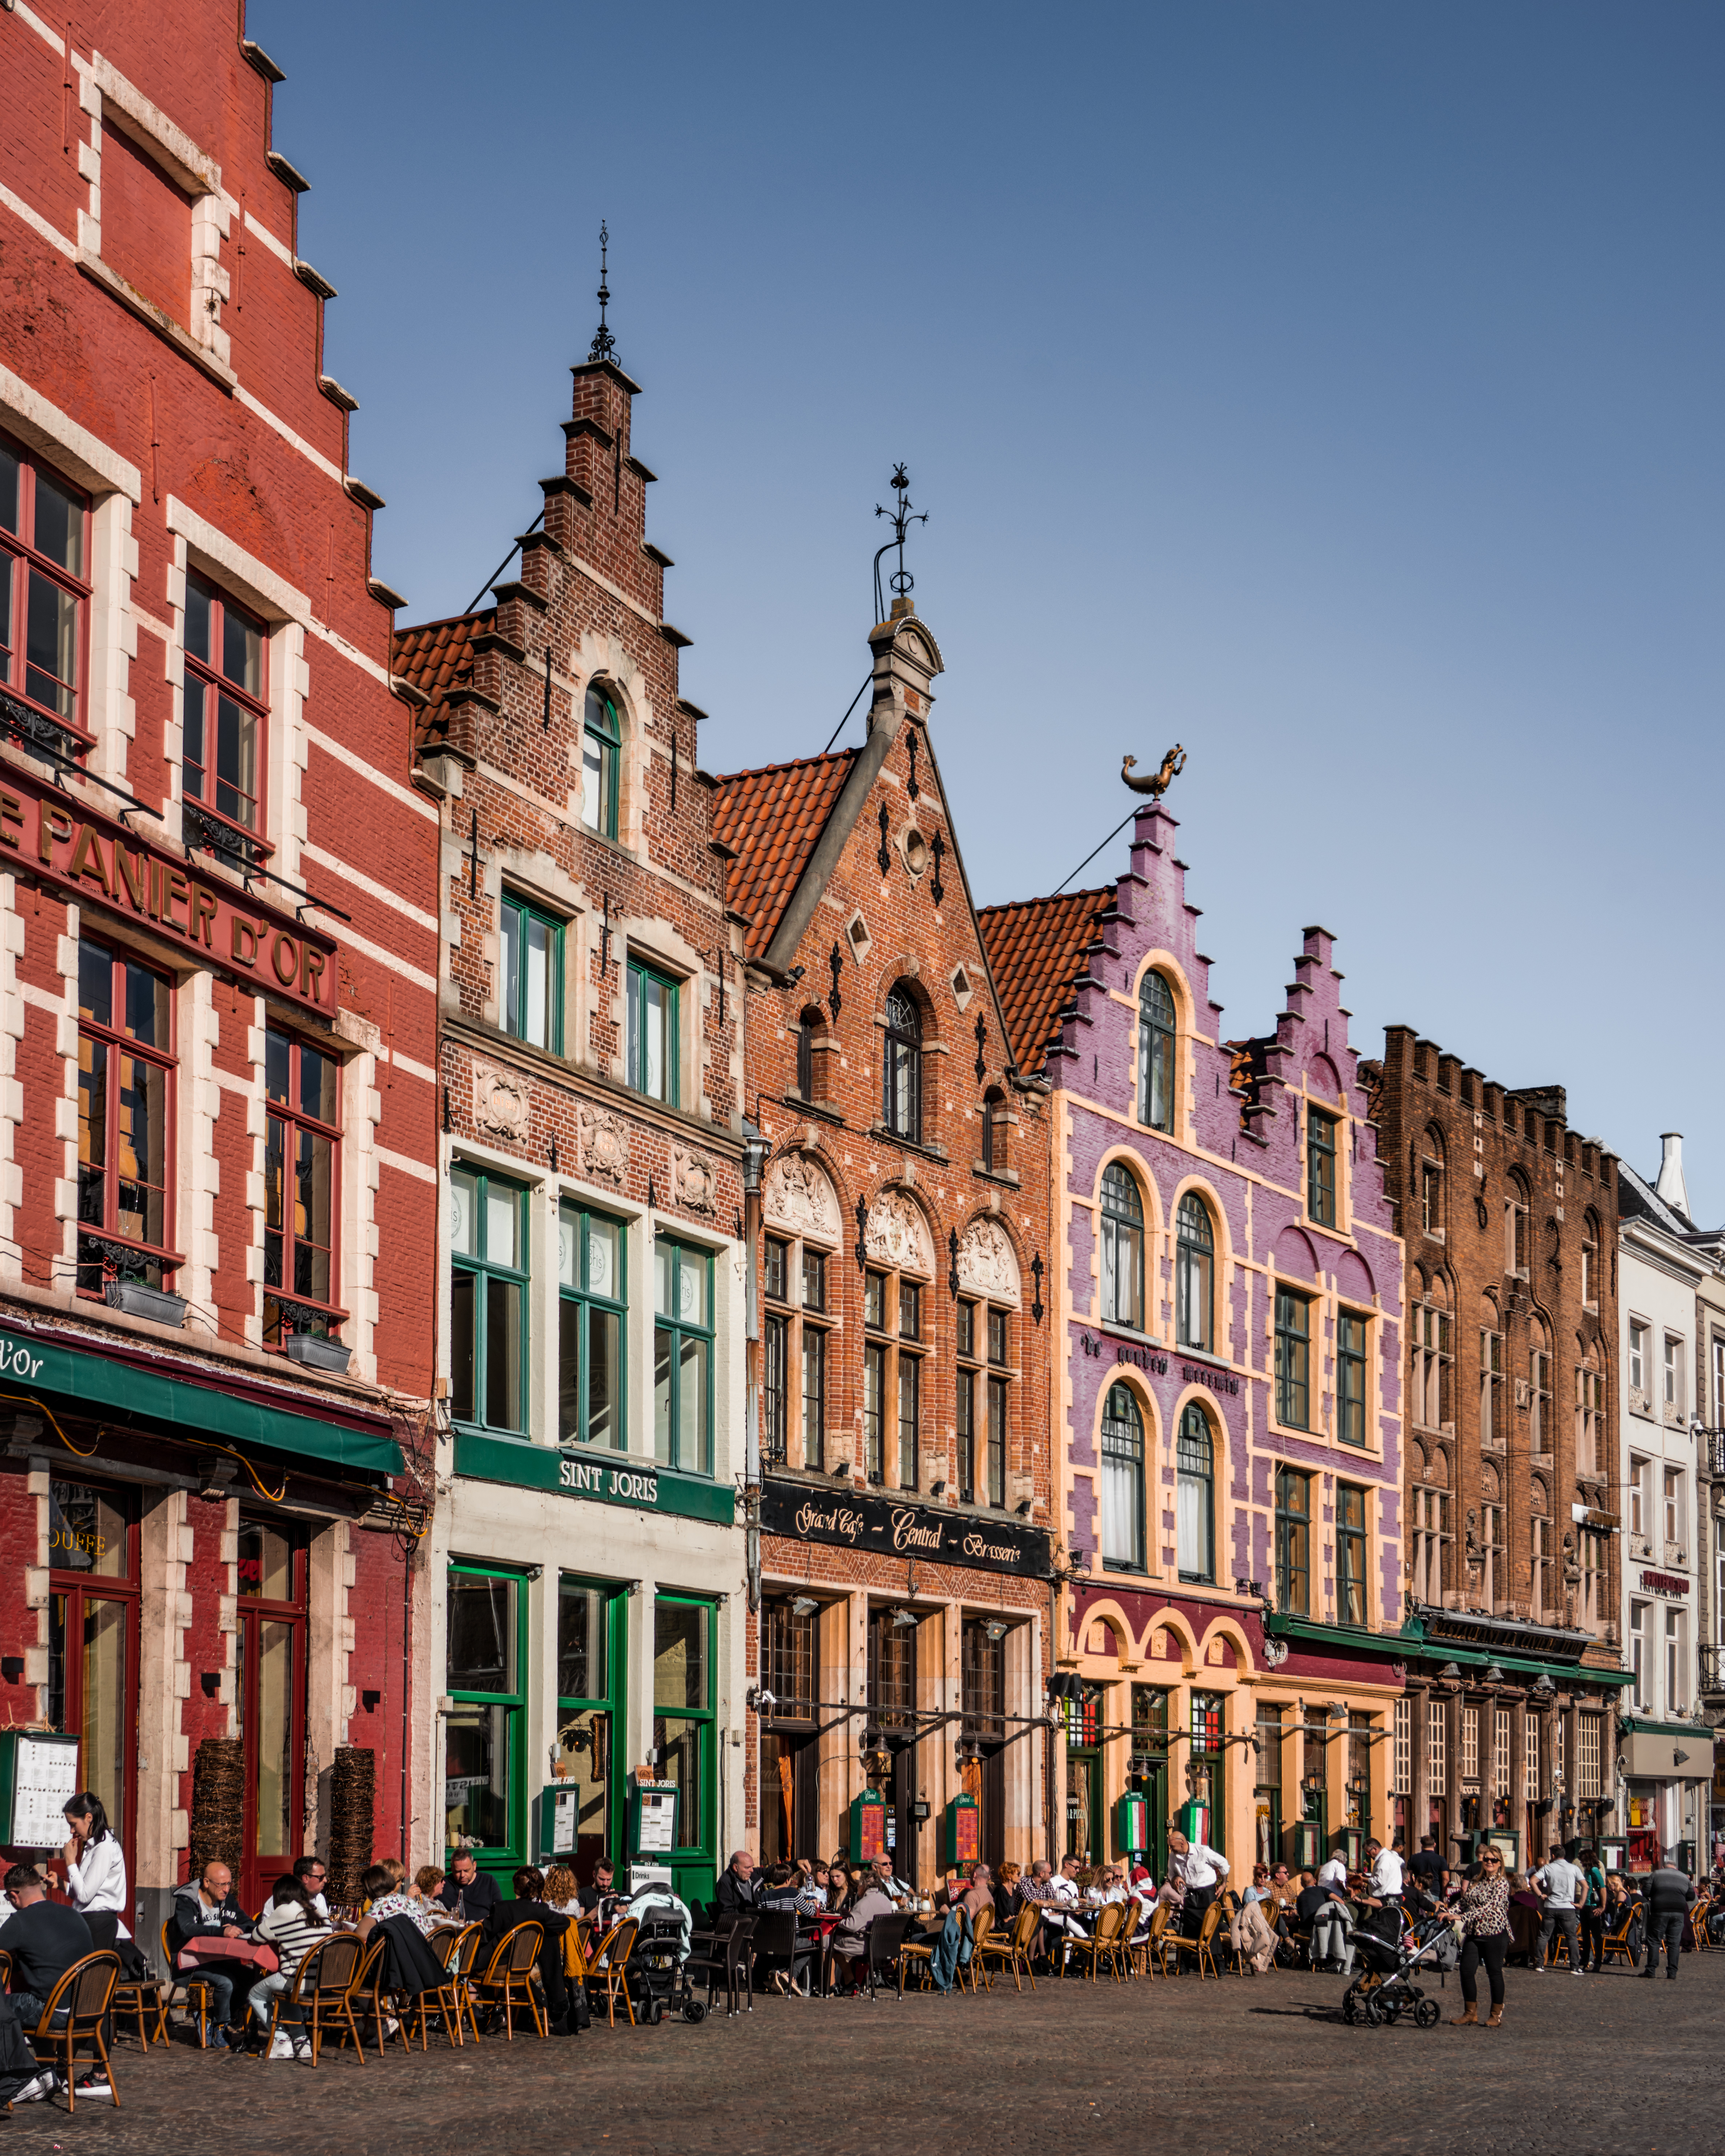 The Most Picturesque Locations in Bruges | The Markt